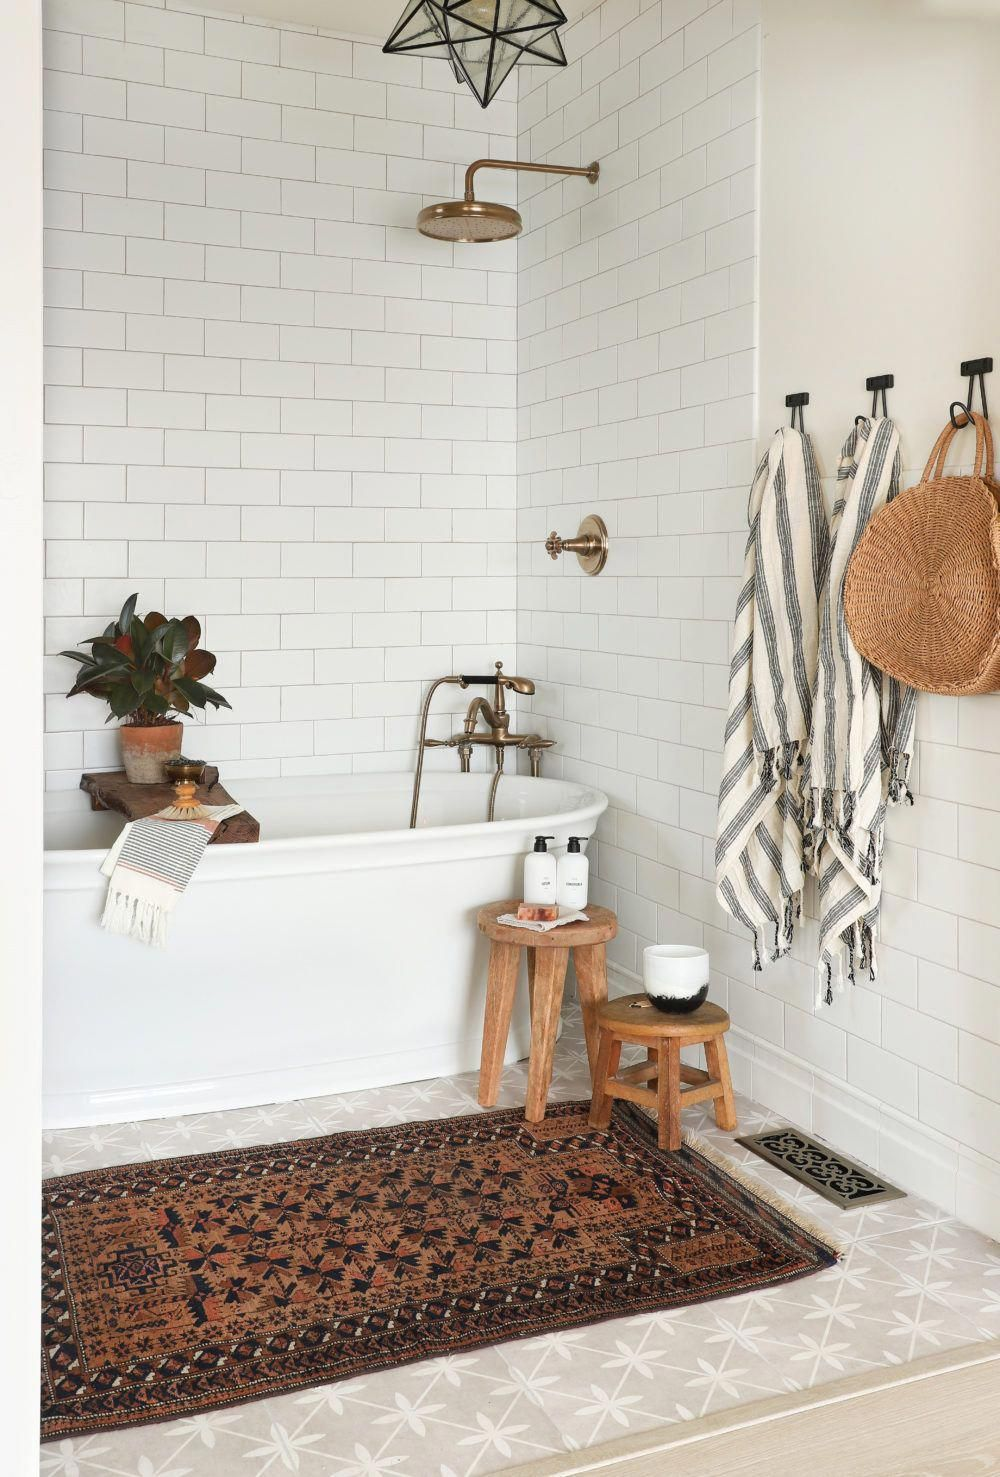 The 8 Must Haves Of Your Rustic Bathroom In 2020 Bad Design